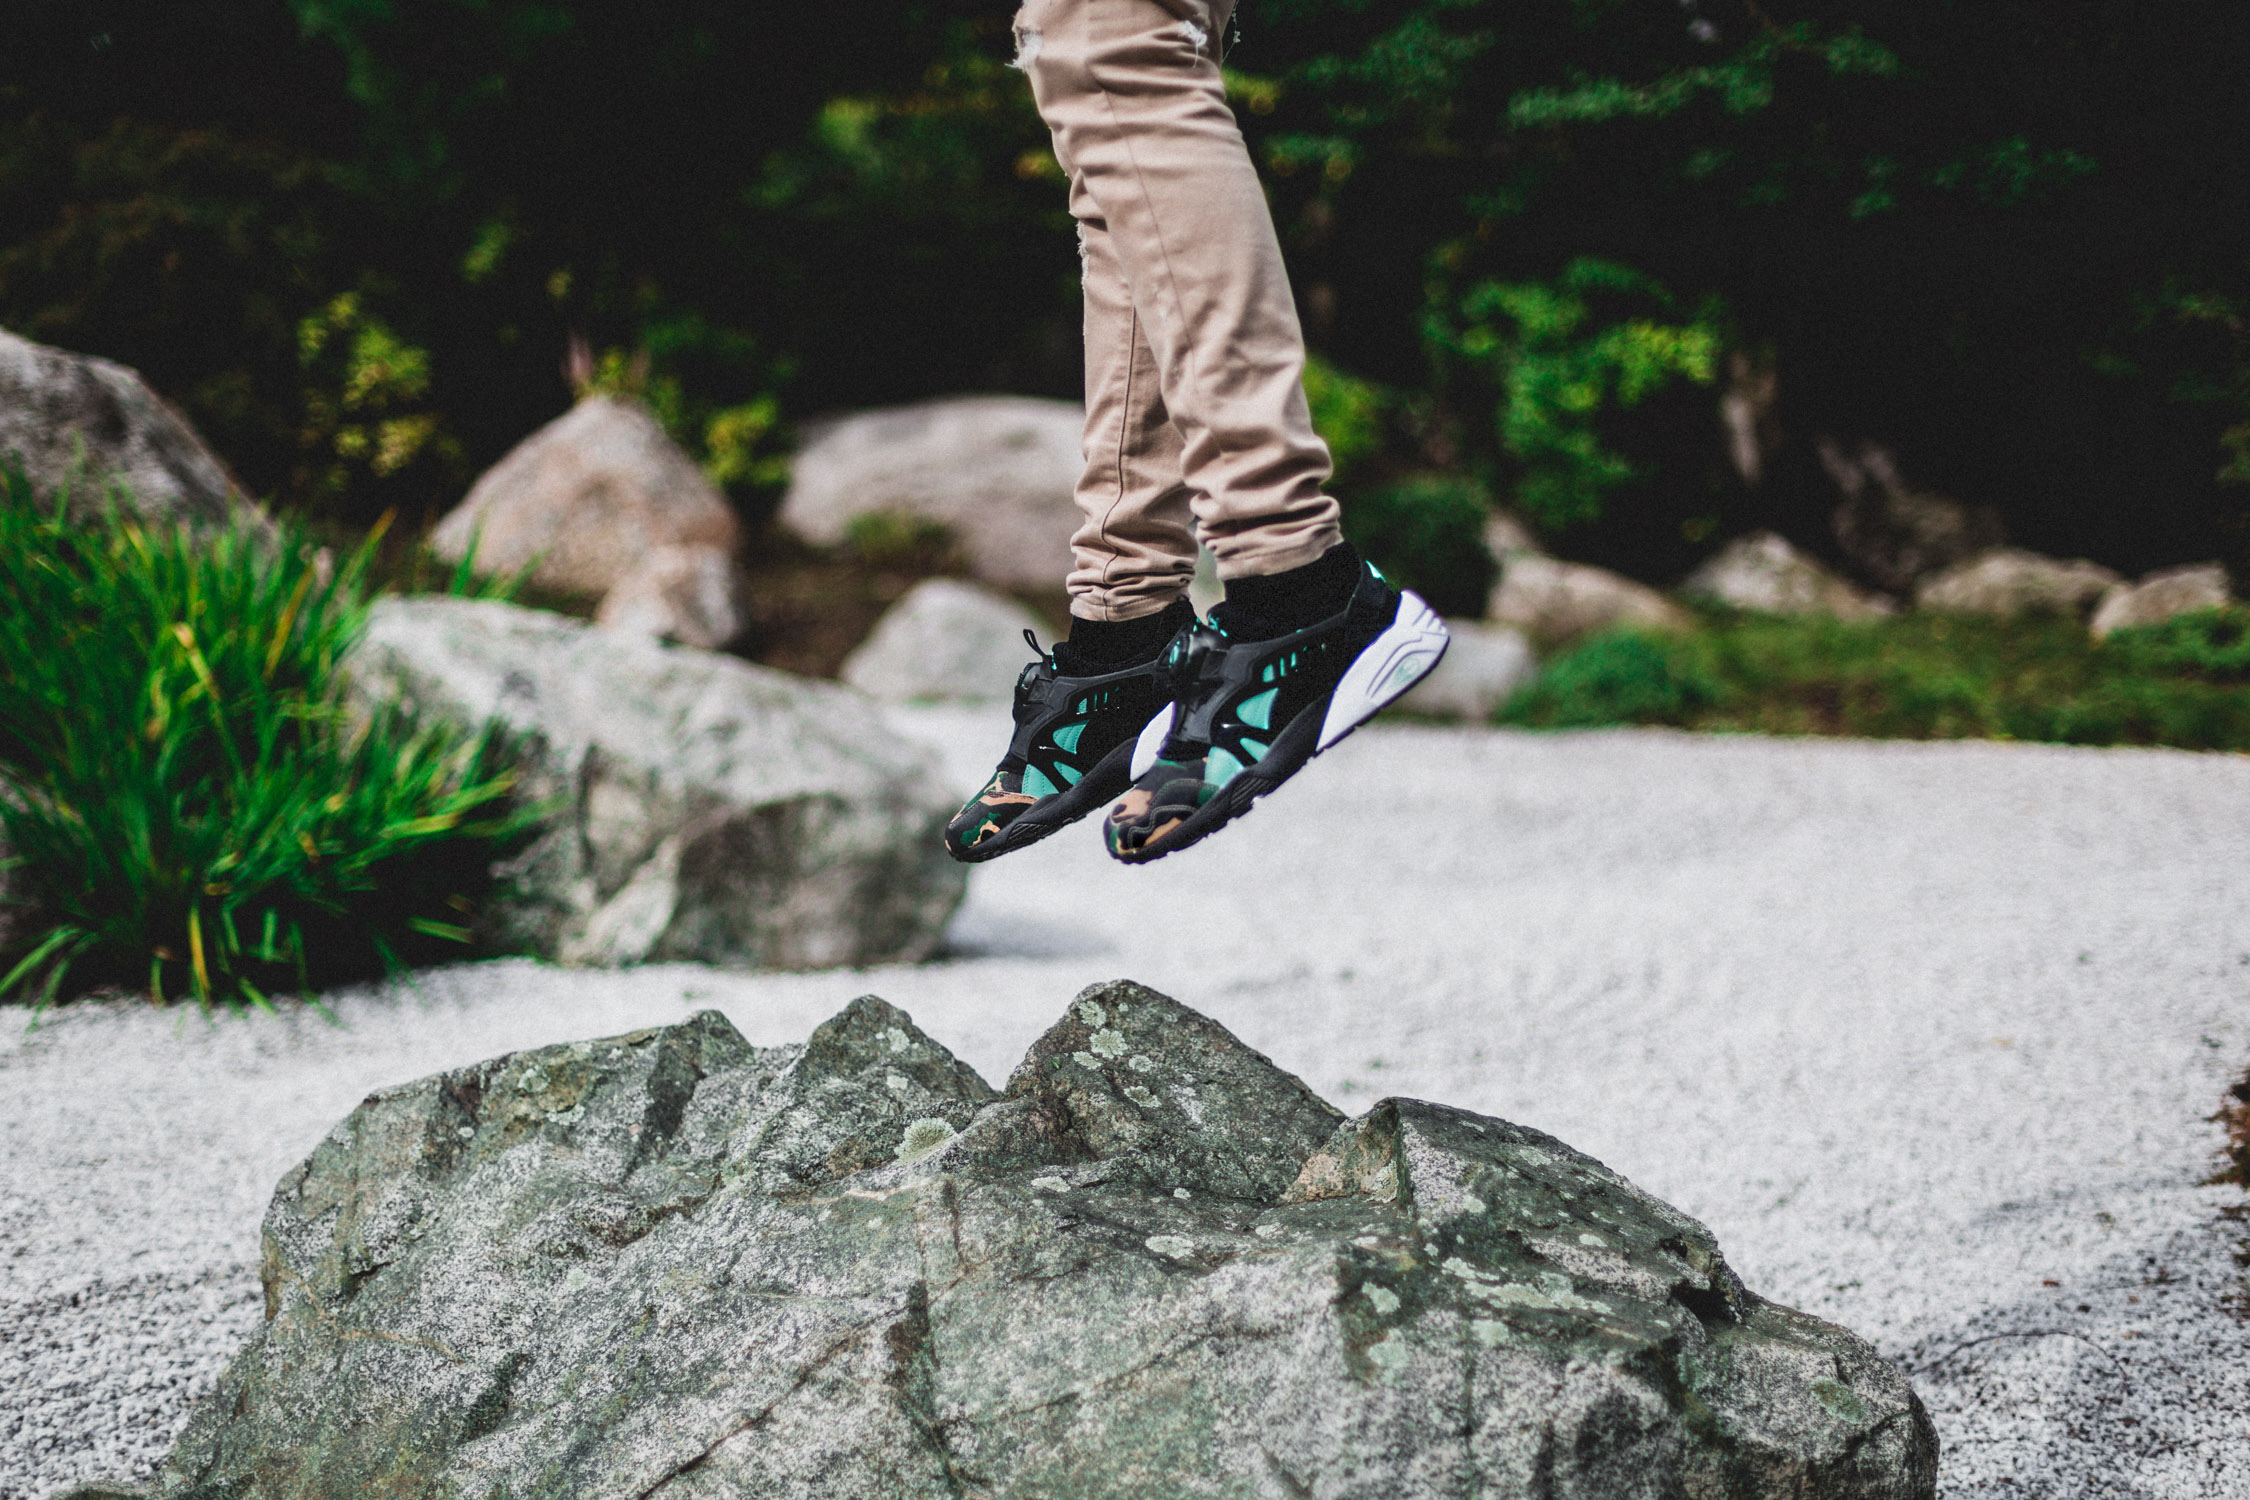 ATMOS x PUMA Disc Blaze Night Jungle 3